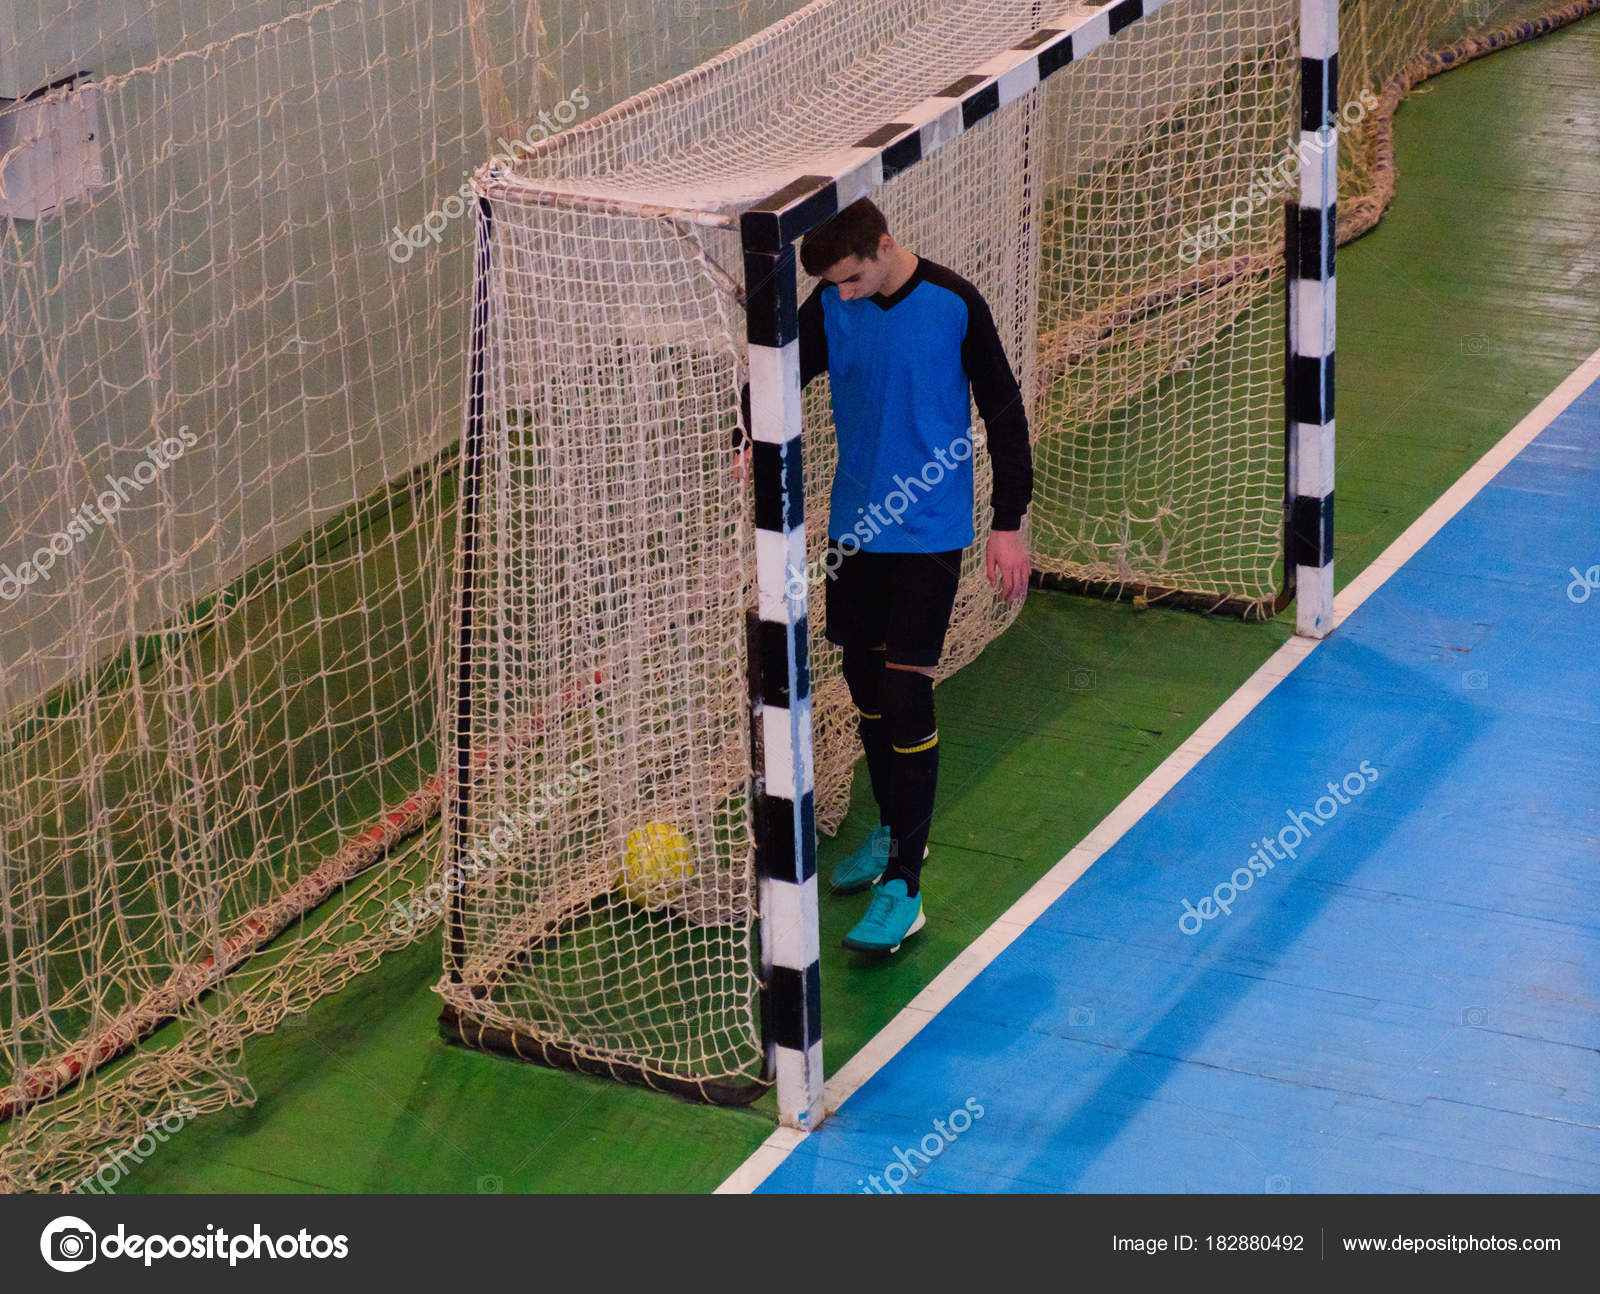 Football Goalkeeper On Goal, Field, Futsal Ball Field In The Gym Indoor,  Soccer